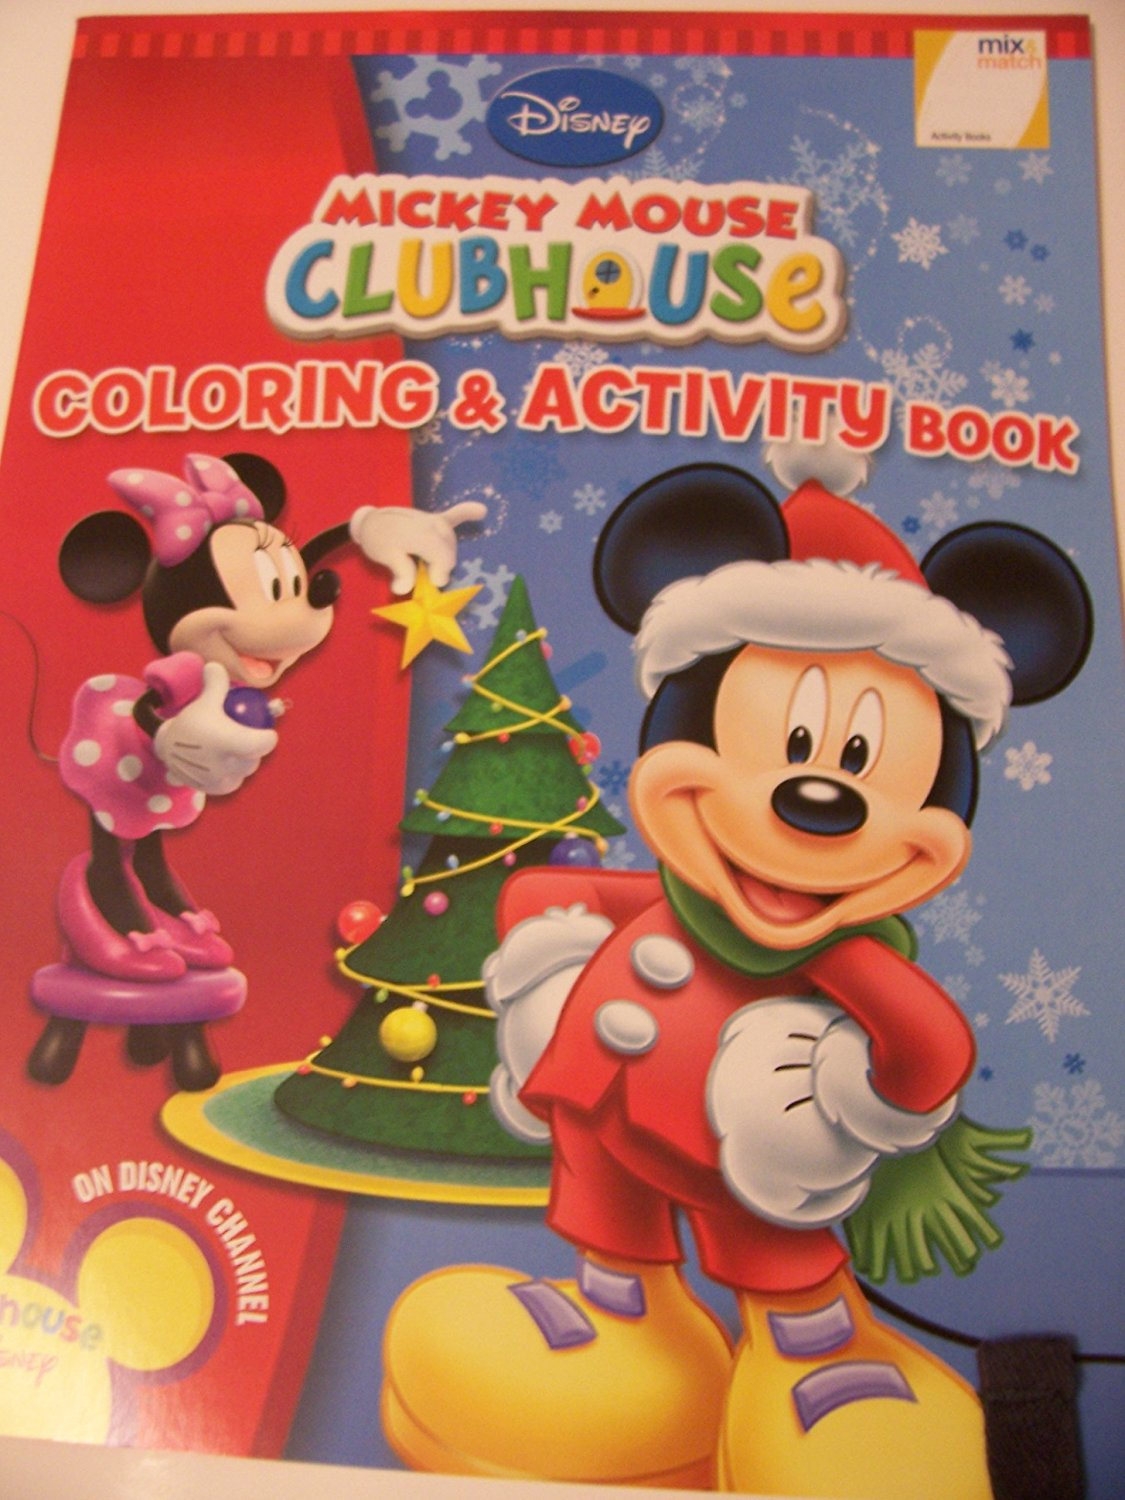 Disney Mickey Mouse Clubhouse Coloring & Activity Book ~ Christmas Edition (Minnie & Mickey Decorating Tree)